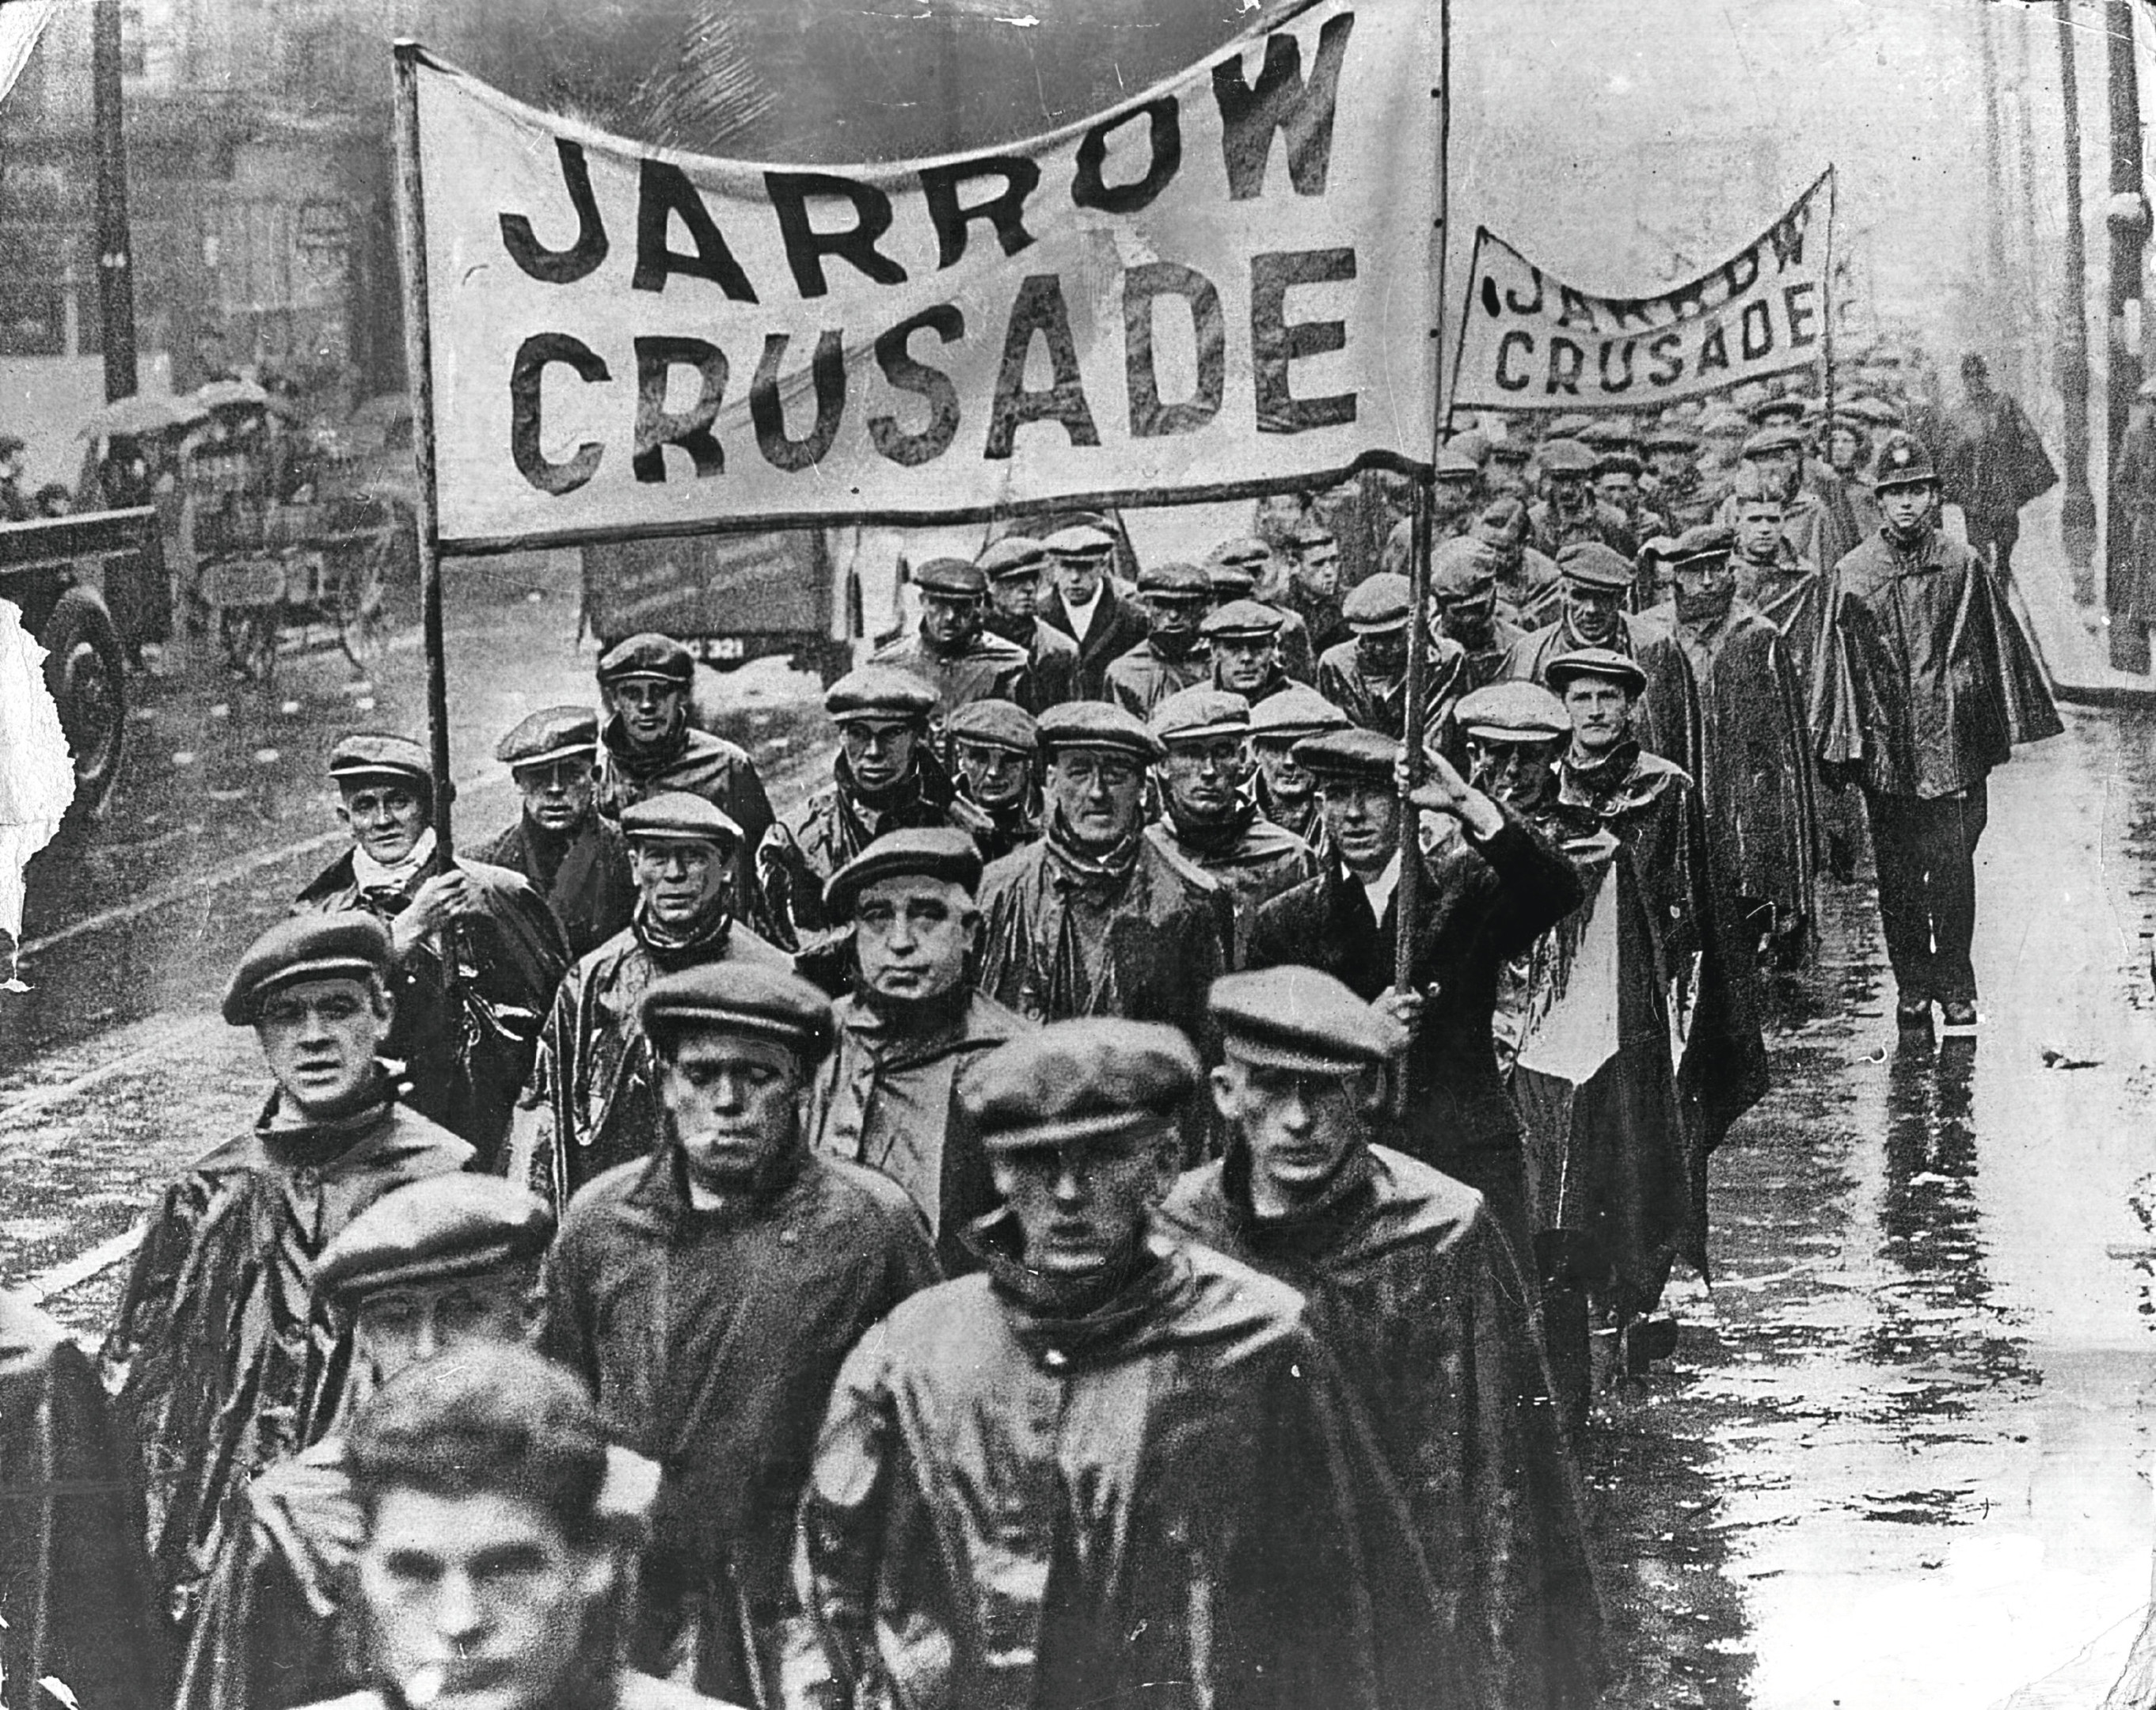 Protest marchers on the Jarrow Crusade (Keystone/Getty Images)